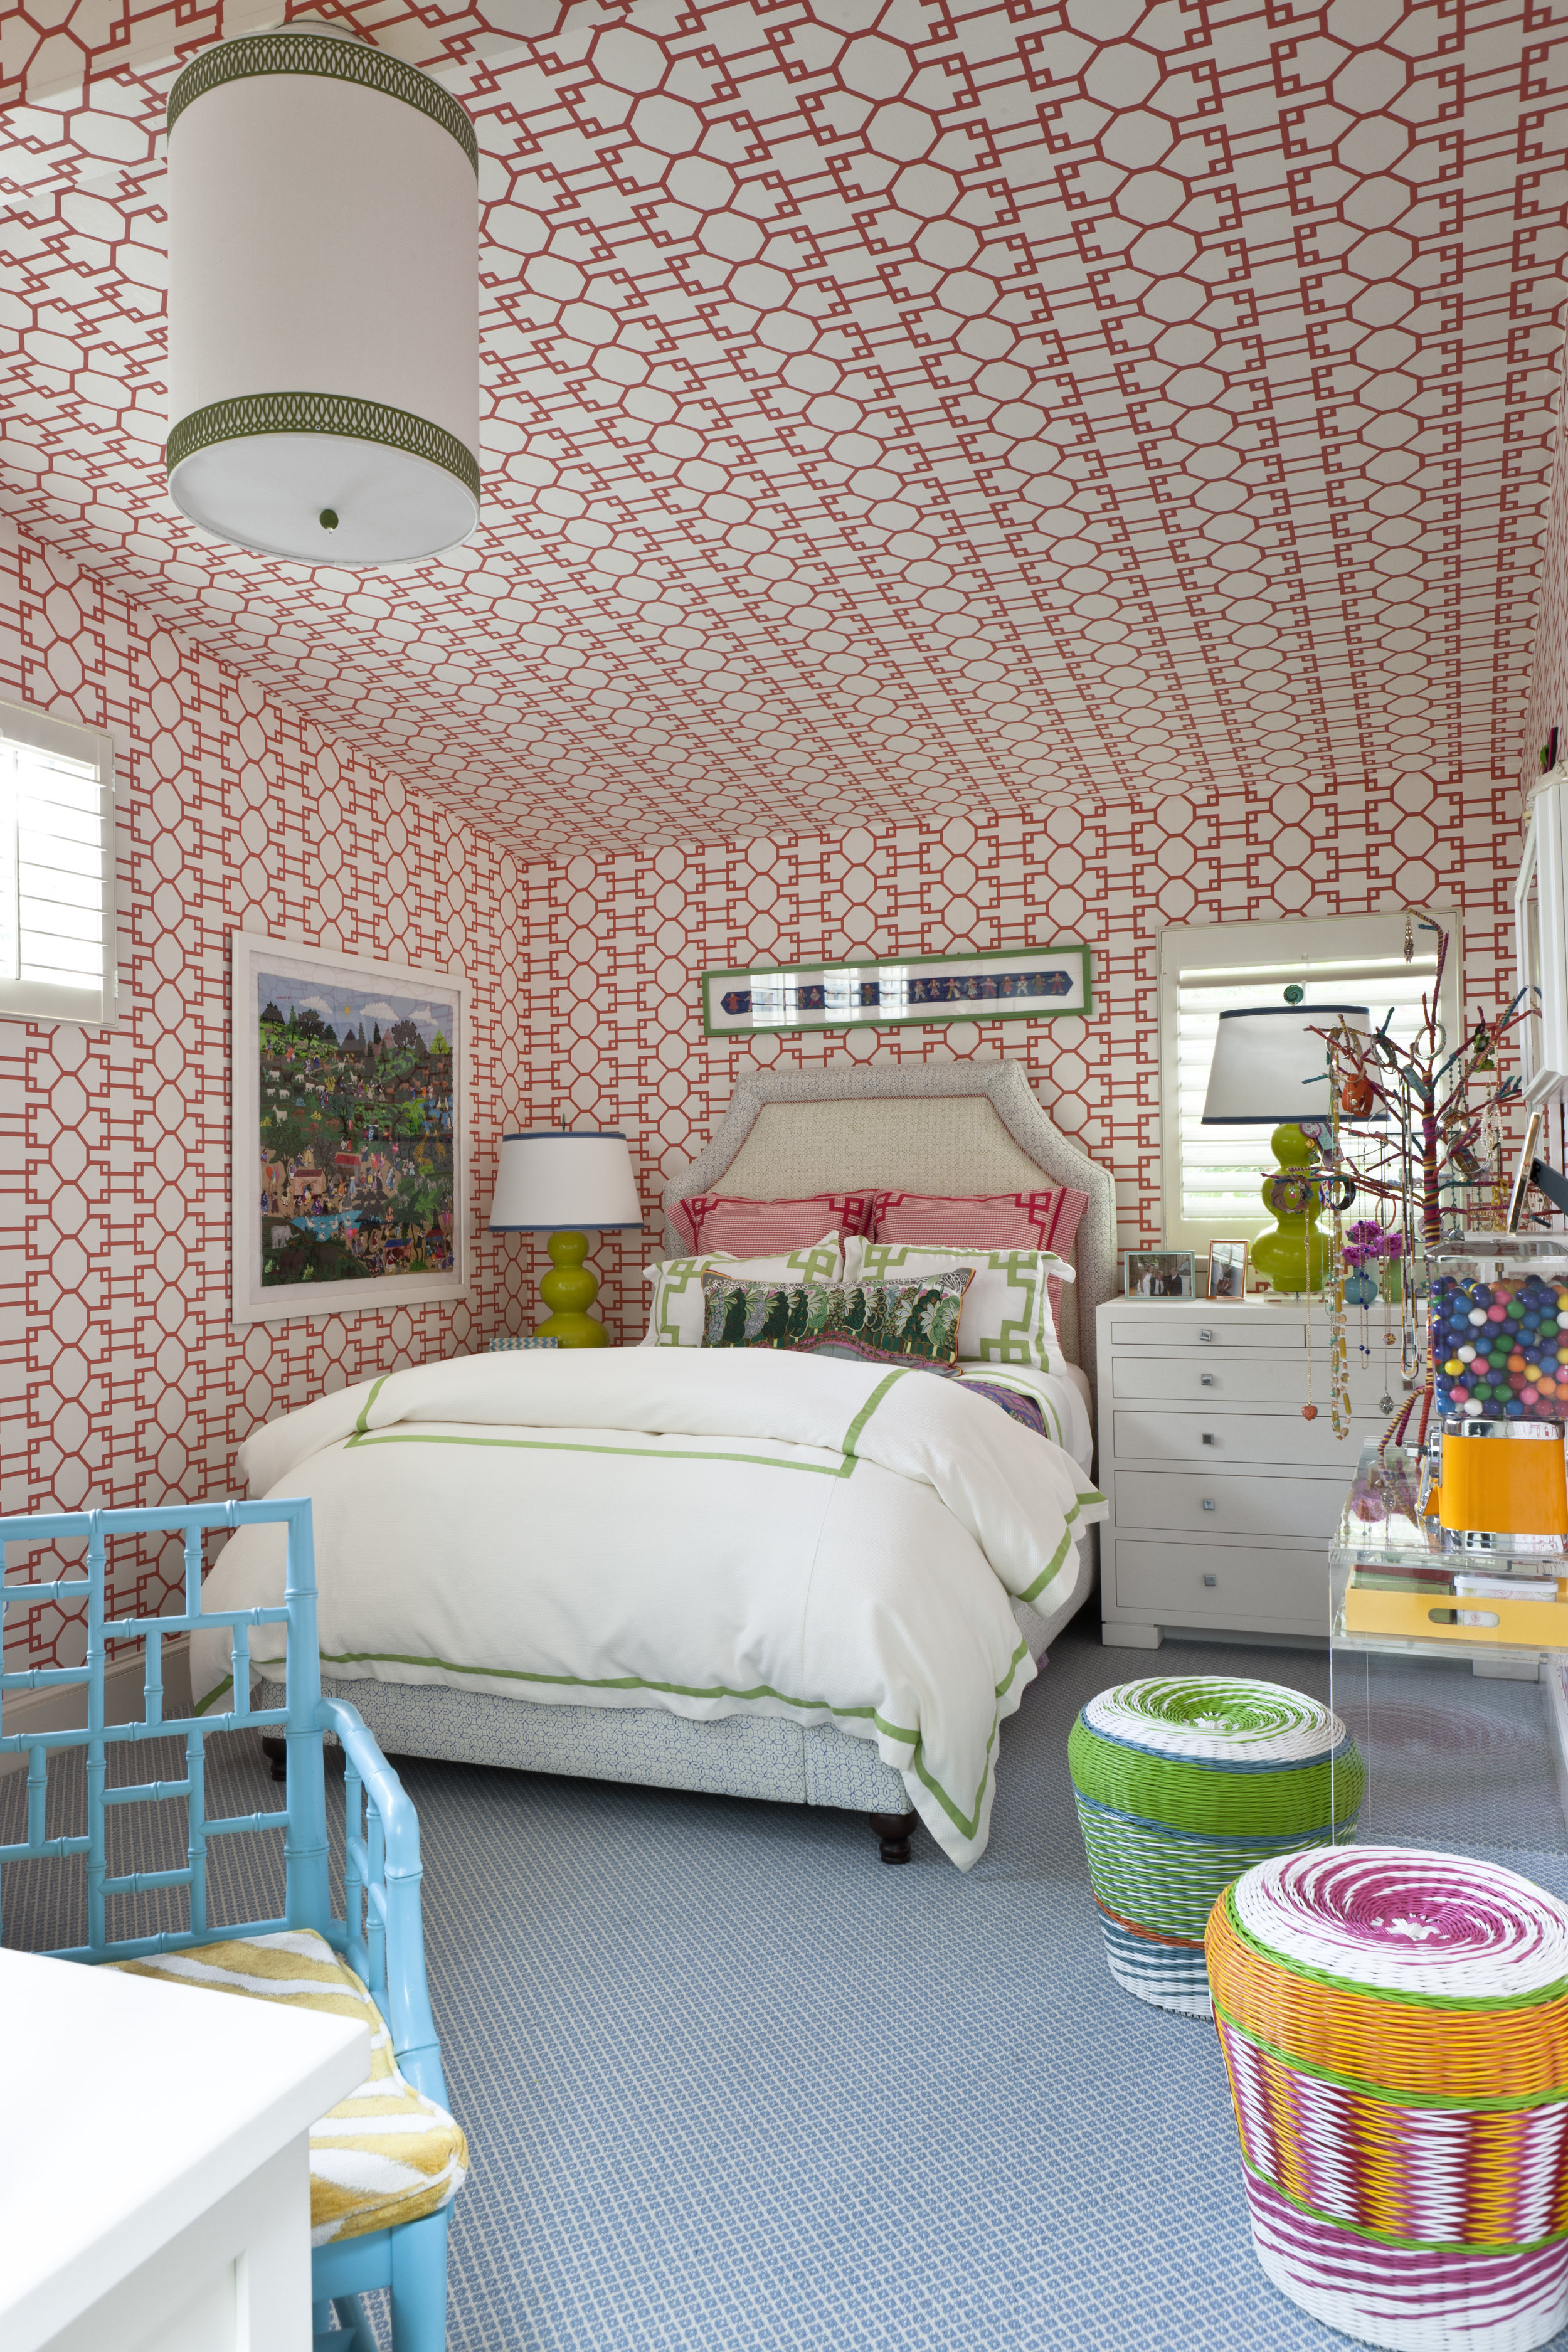 Cool coral geometrics lay the foundation for this young bedroom.